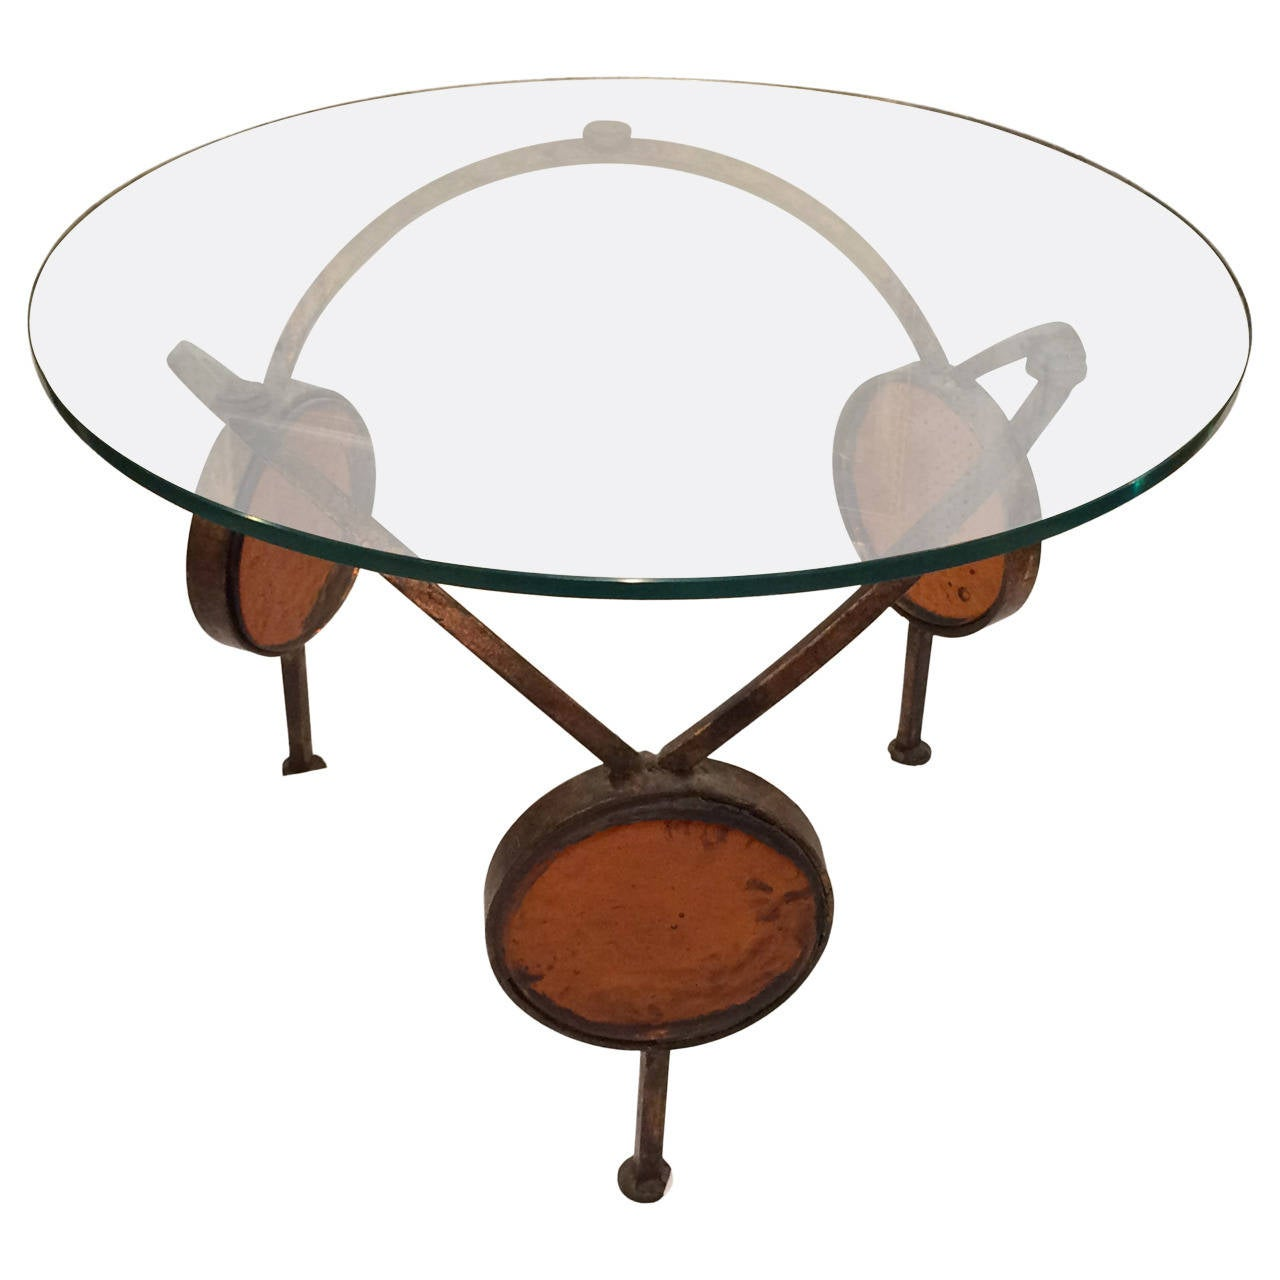 Italian Gold Gilt Iron And Glass Faux Bamboo Metal Square: Gilt Iron And Blown Glass Artisan Table For Sale At 1stdibs